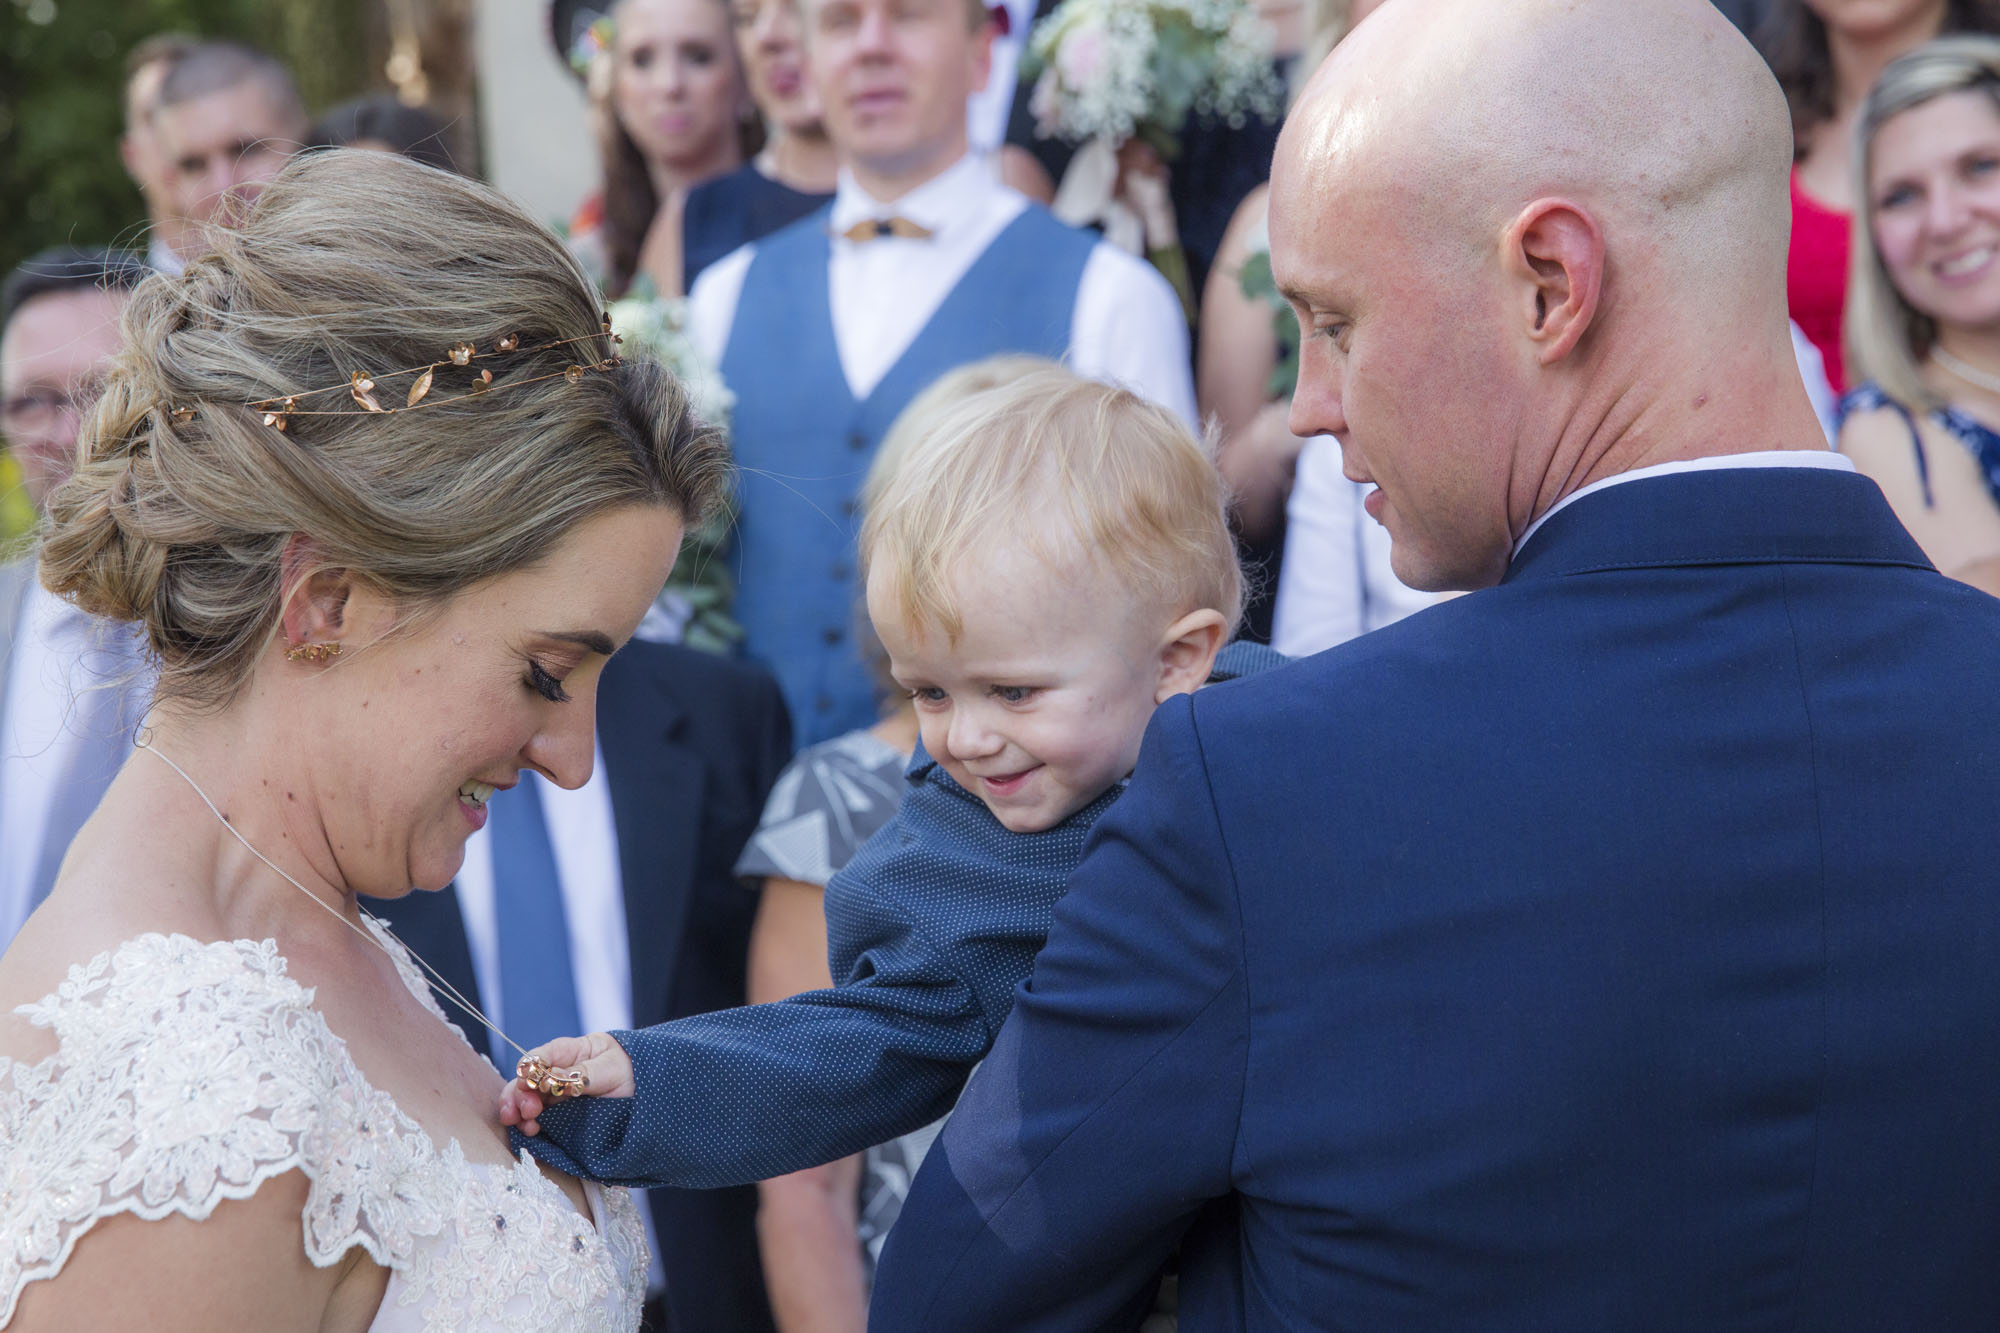 104a-wedding-photography-packages-johannesburg104a-wedding-photography-packages-johannesburg_a.jpg